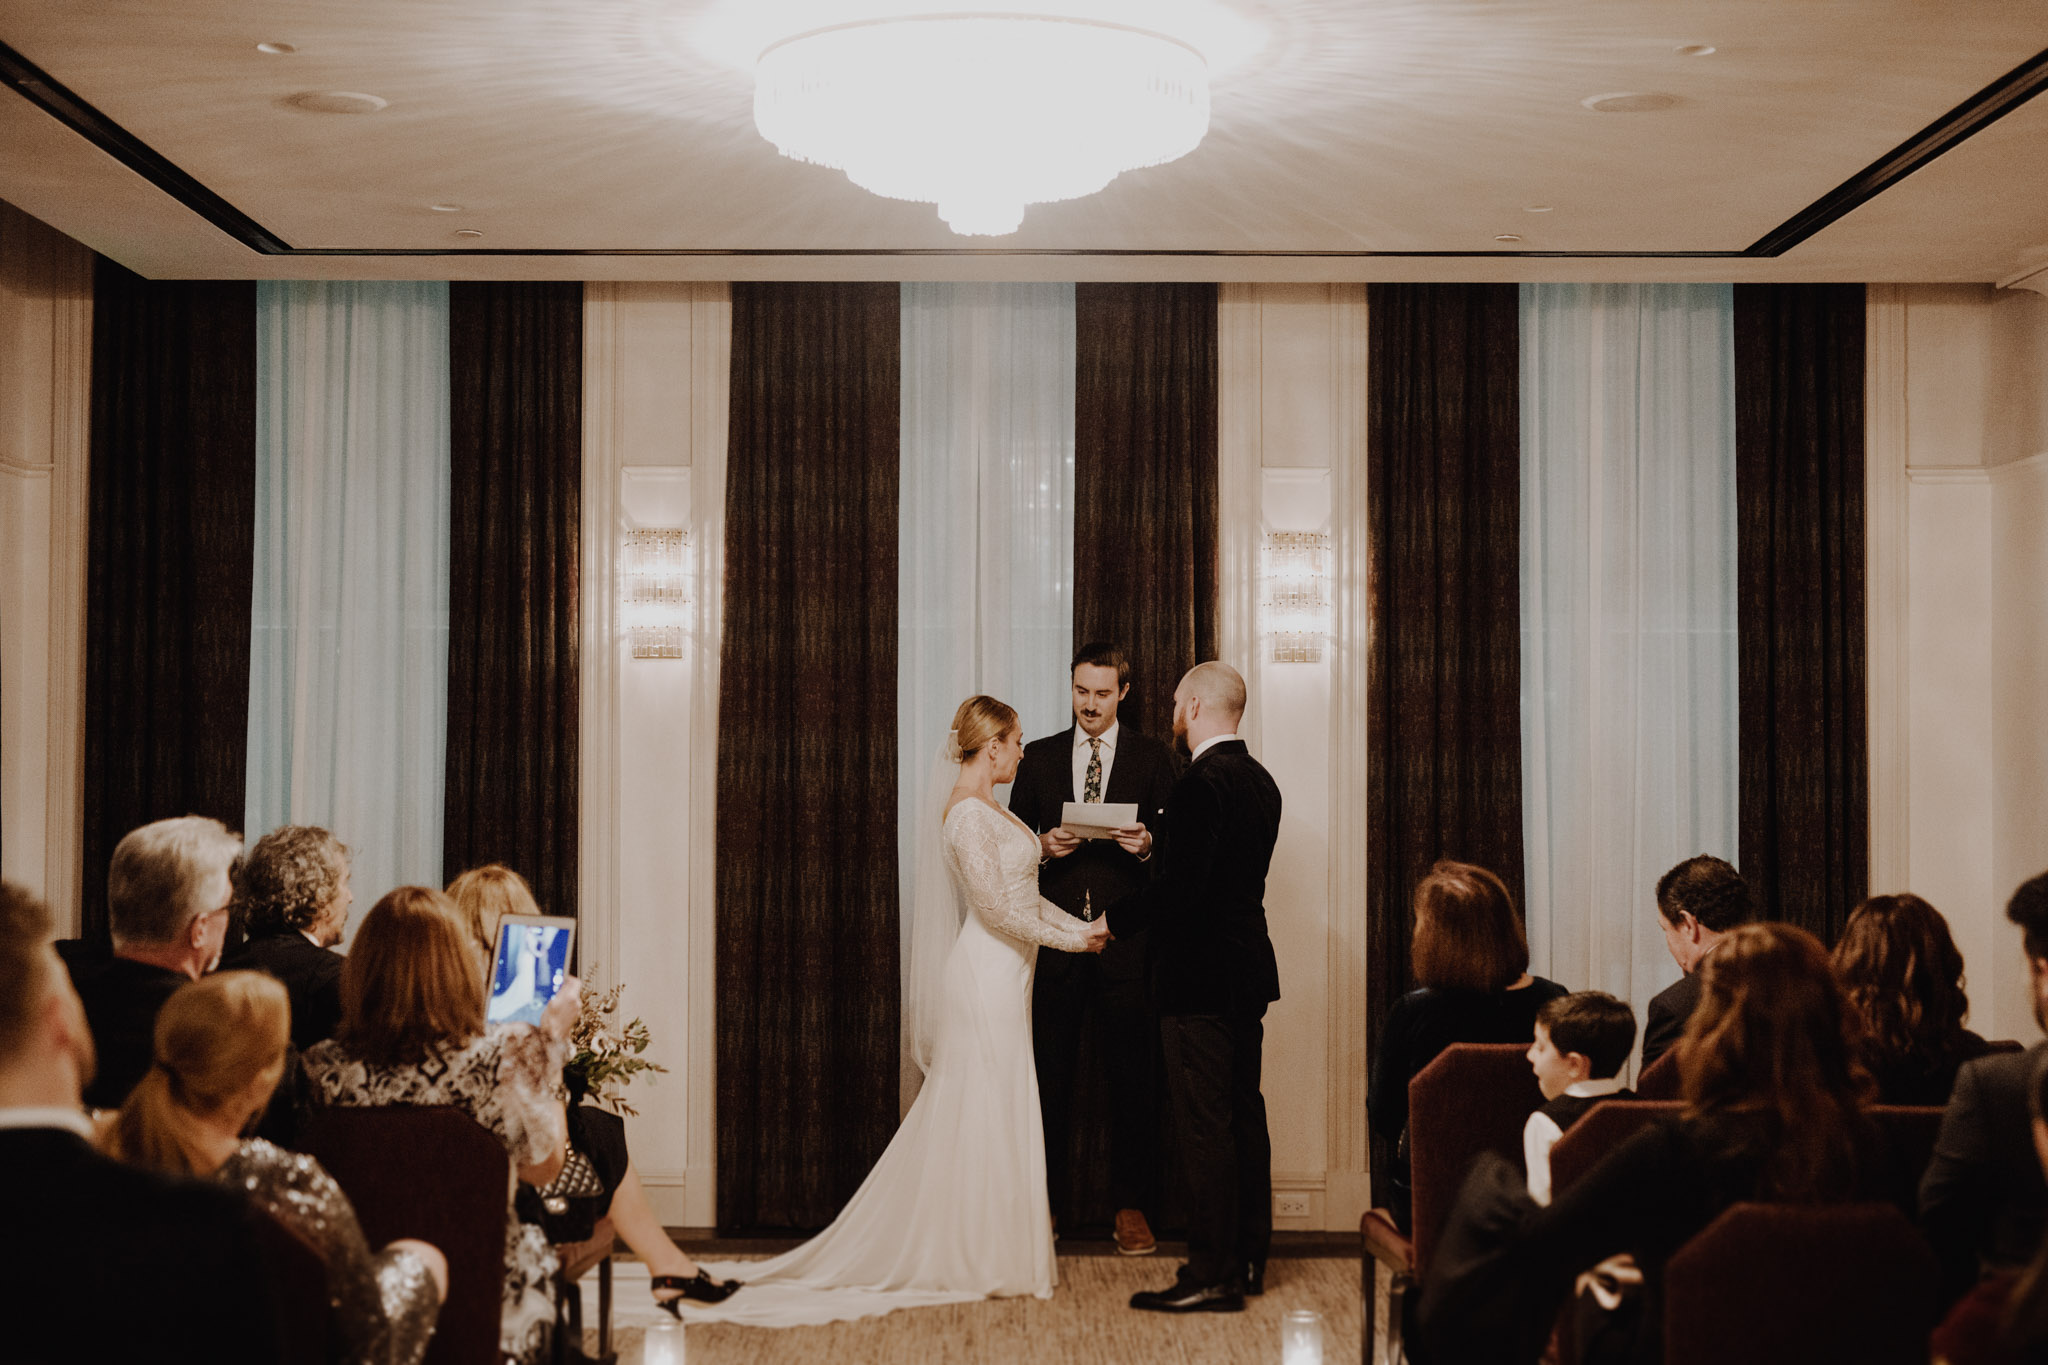 Downtown NYC Wedding - The Beekman Hotel - bride and groom at the alter